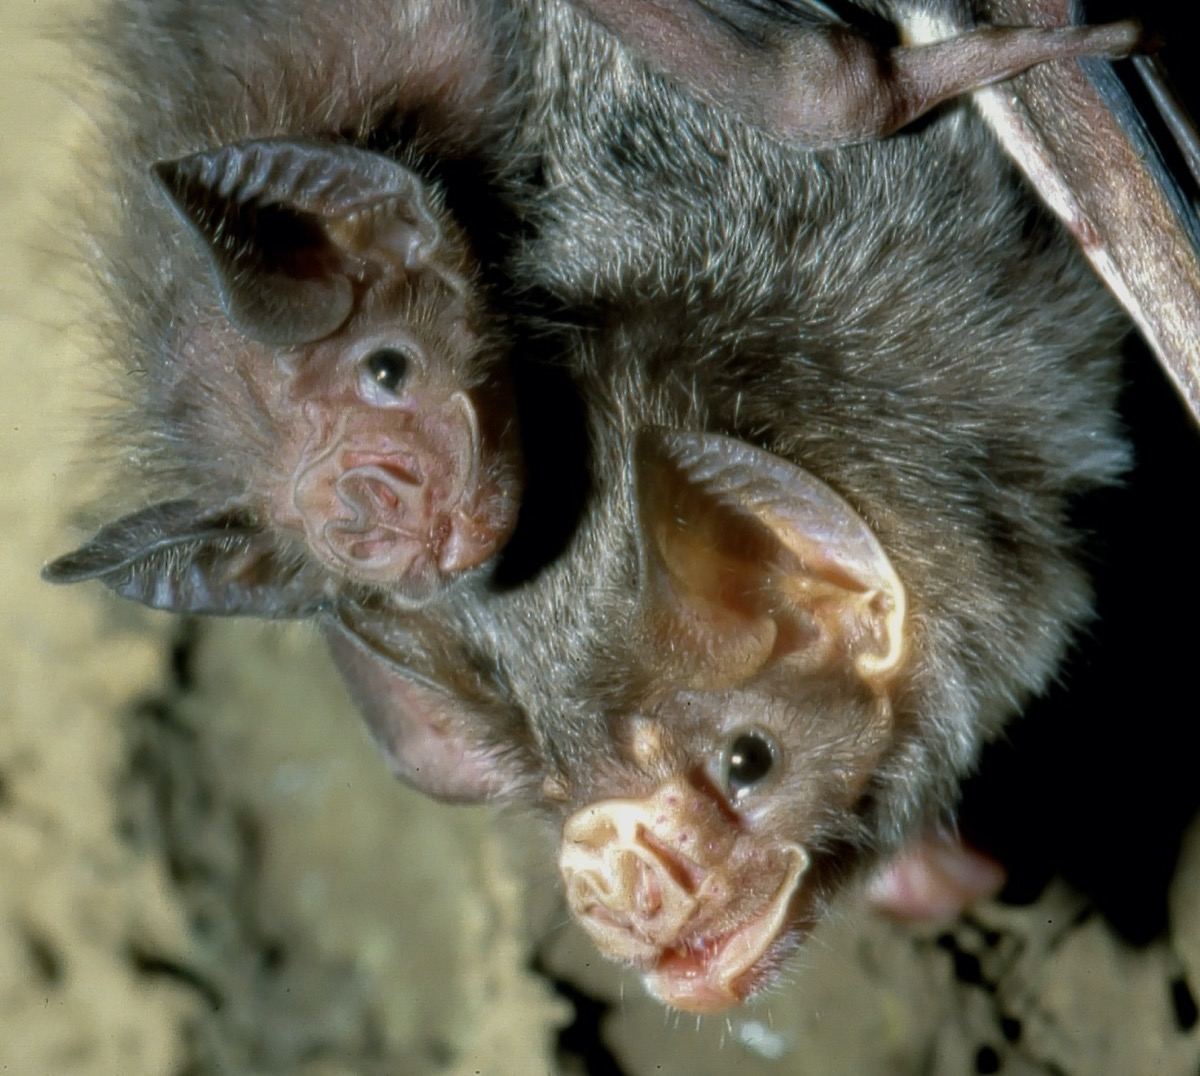 two bats nestled together in a cave